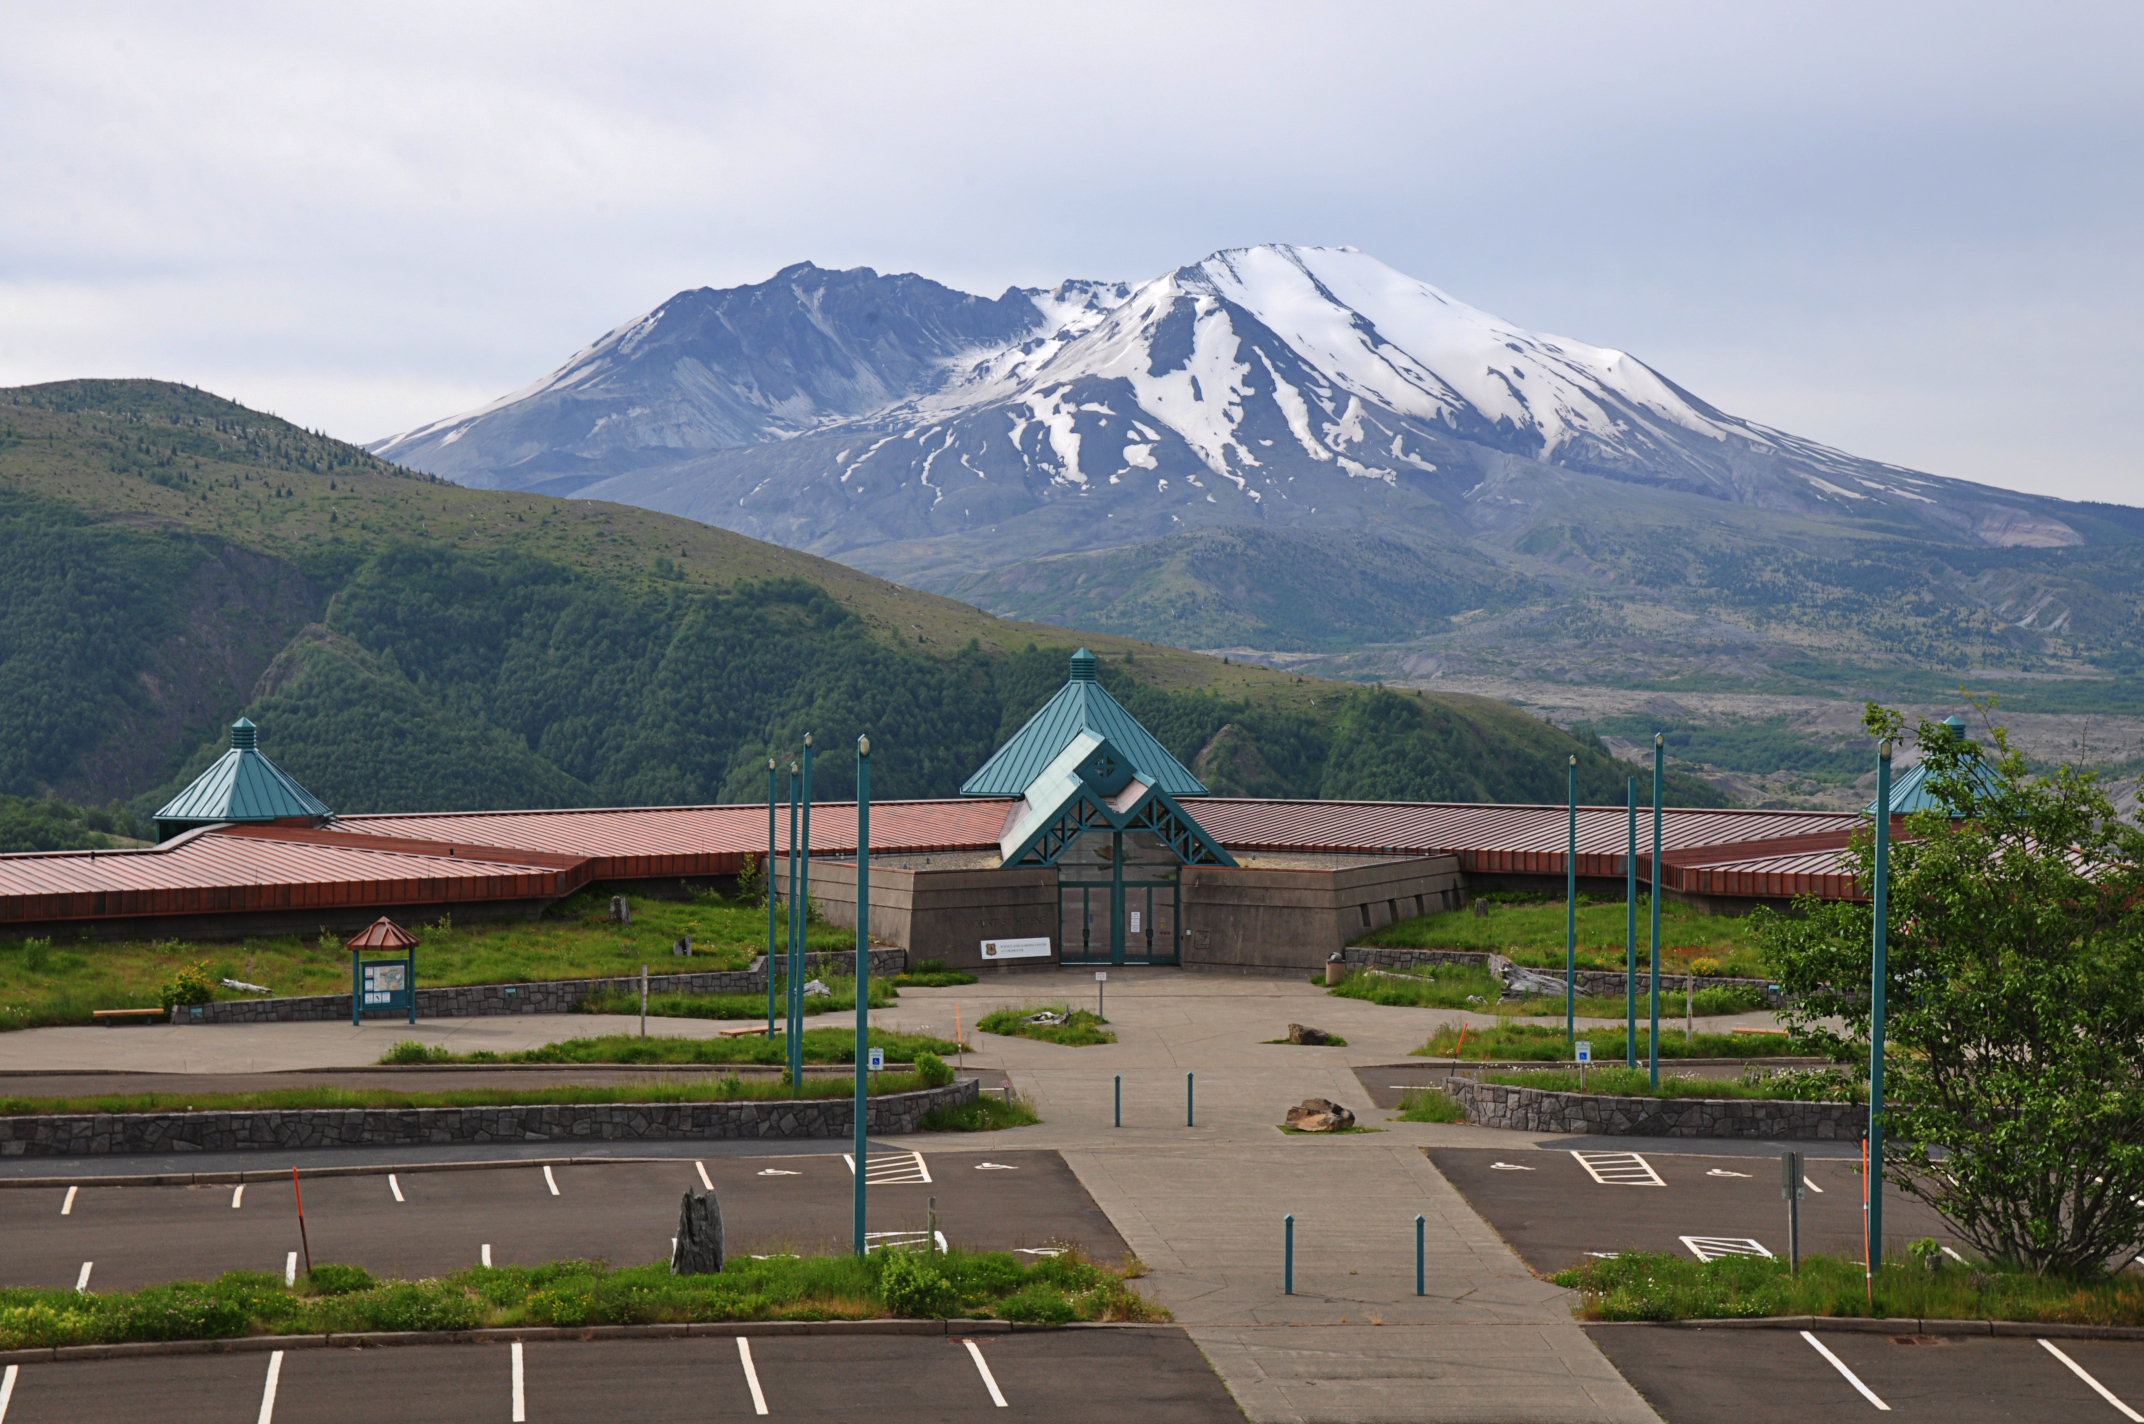 Volcano Seismicity Mount St Helens Science And